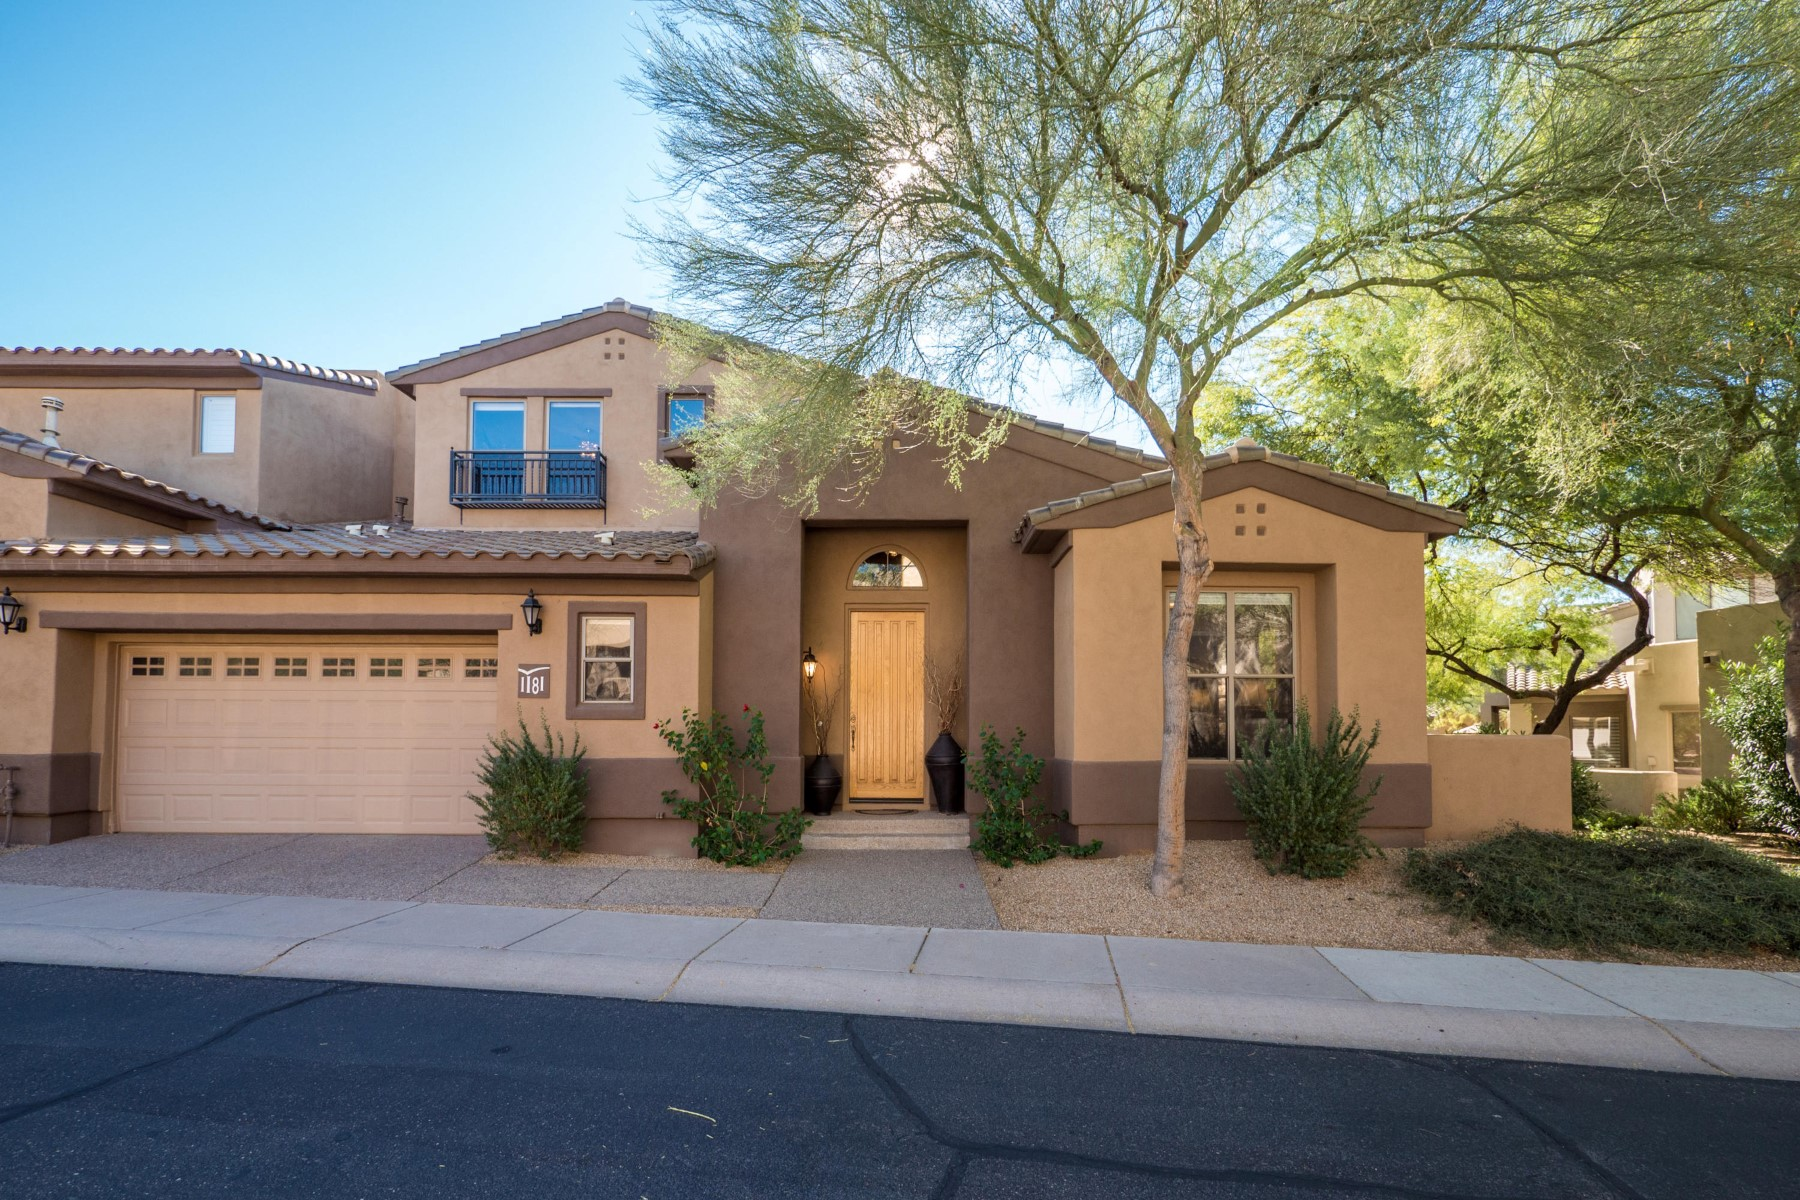 Townhouse for Sale at Gorgeous and rarely listed Merlin model in Grayhawk 20802 N Grayhawk Dr 1181 Scottsdale, Arizona, 85255 United States